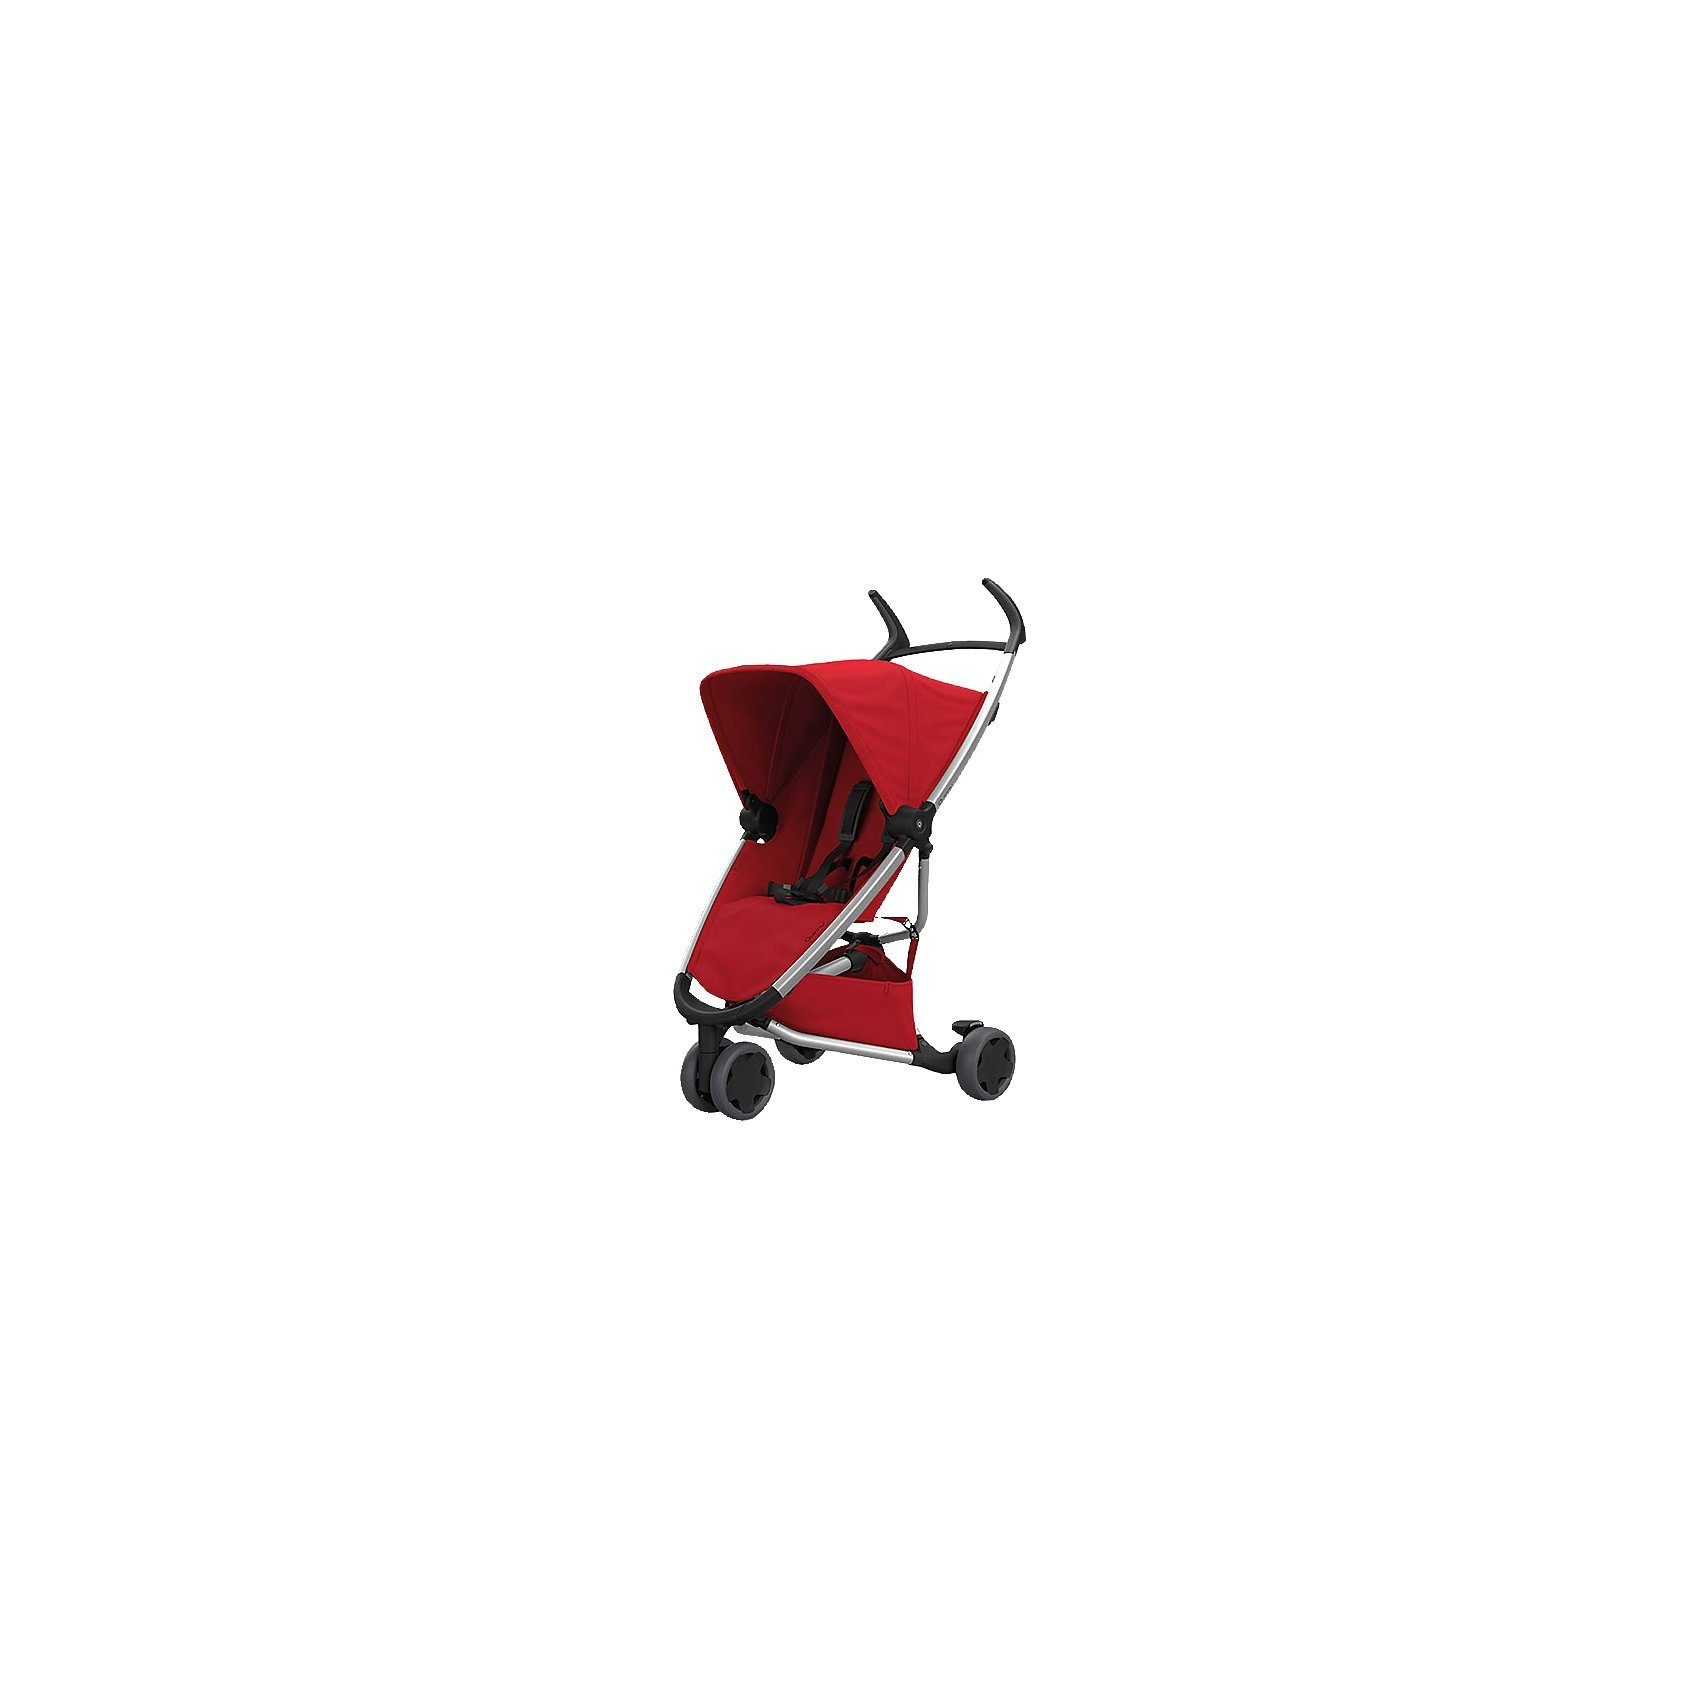 Quinny Buggy Zapp Xpress, all red, 2017